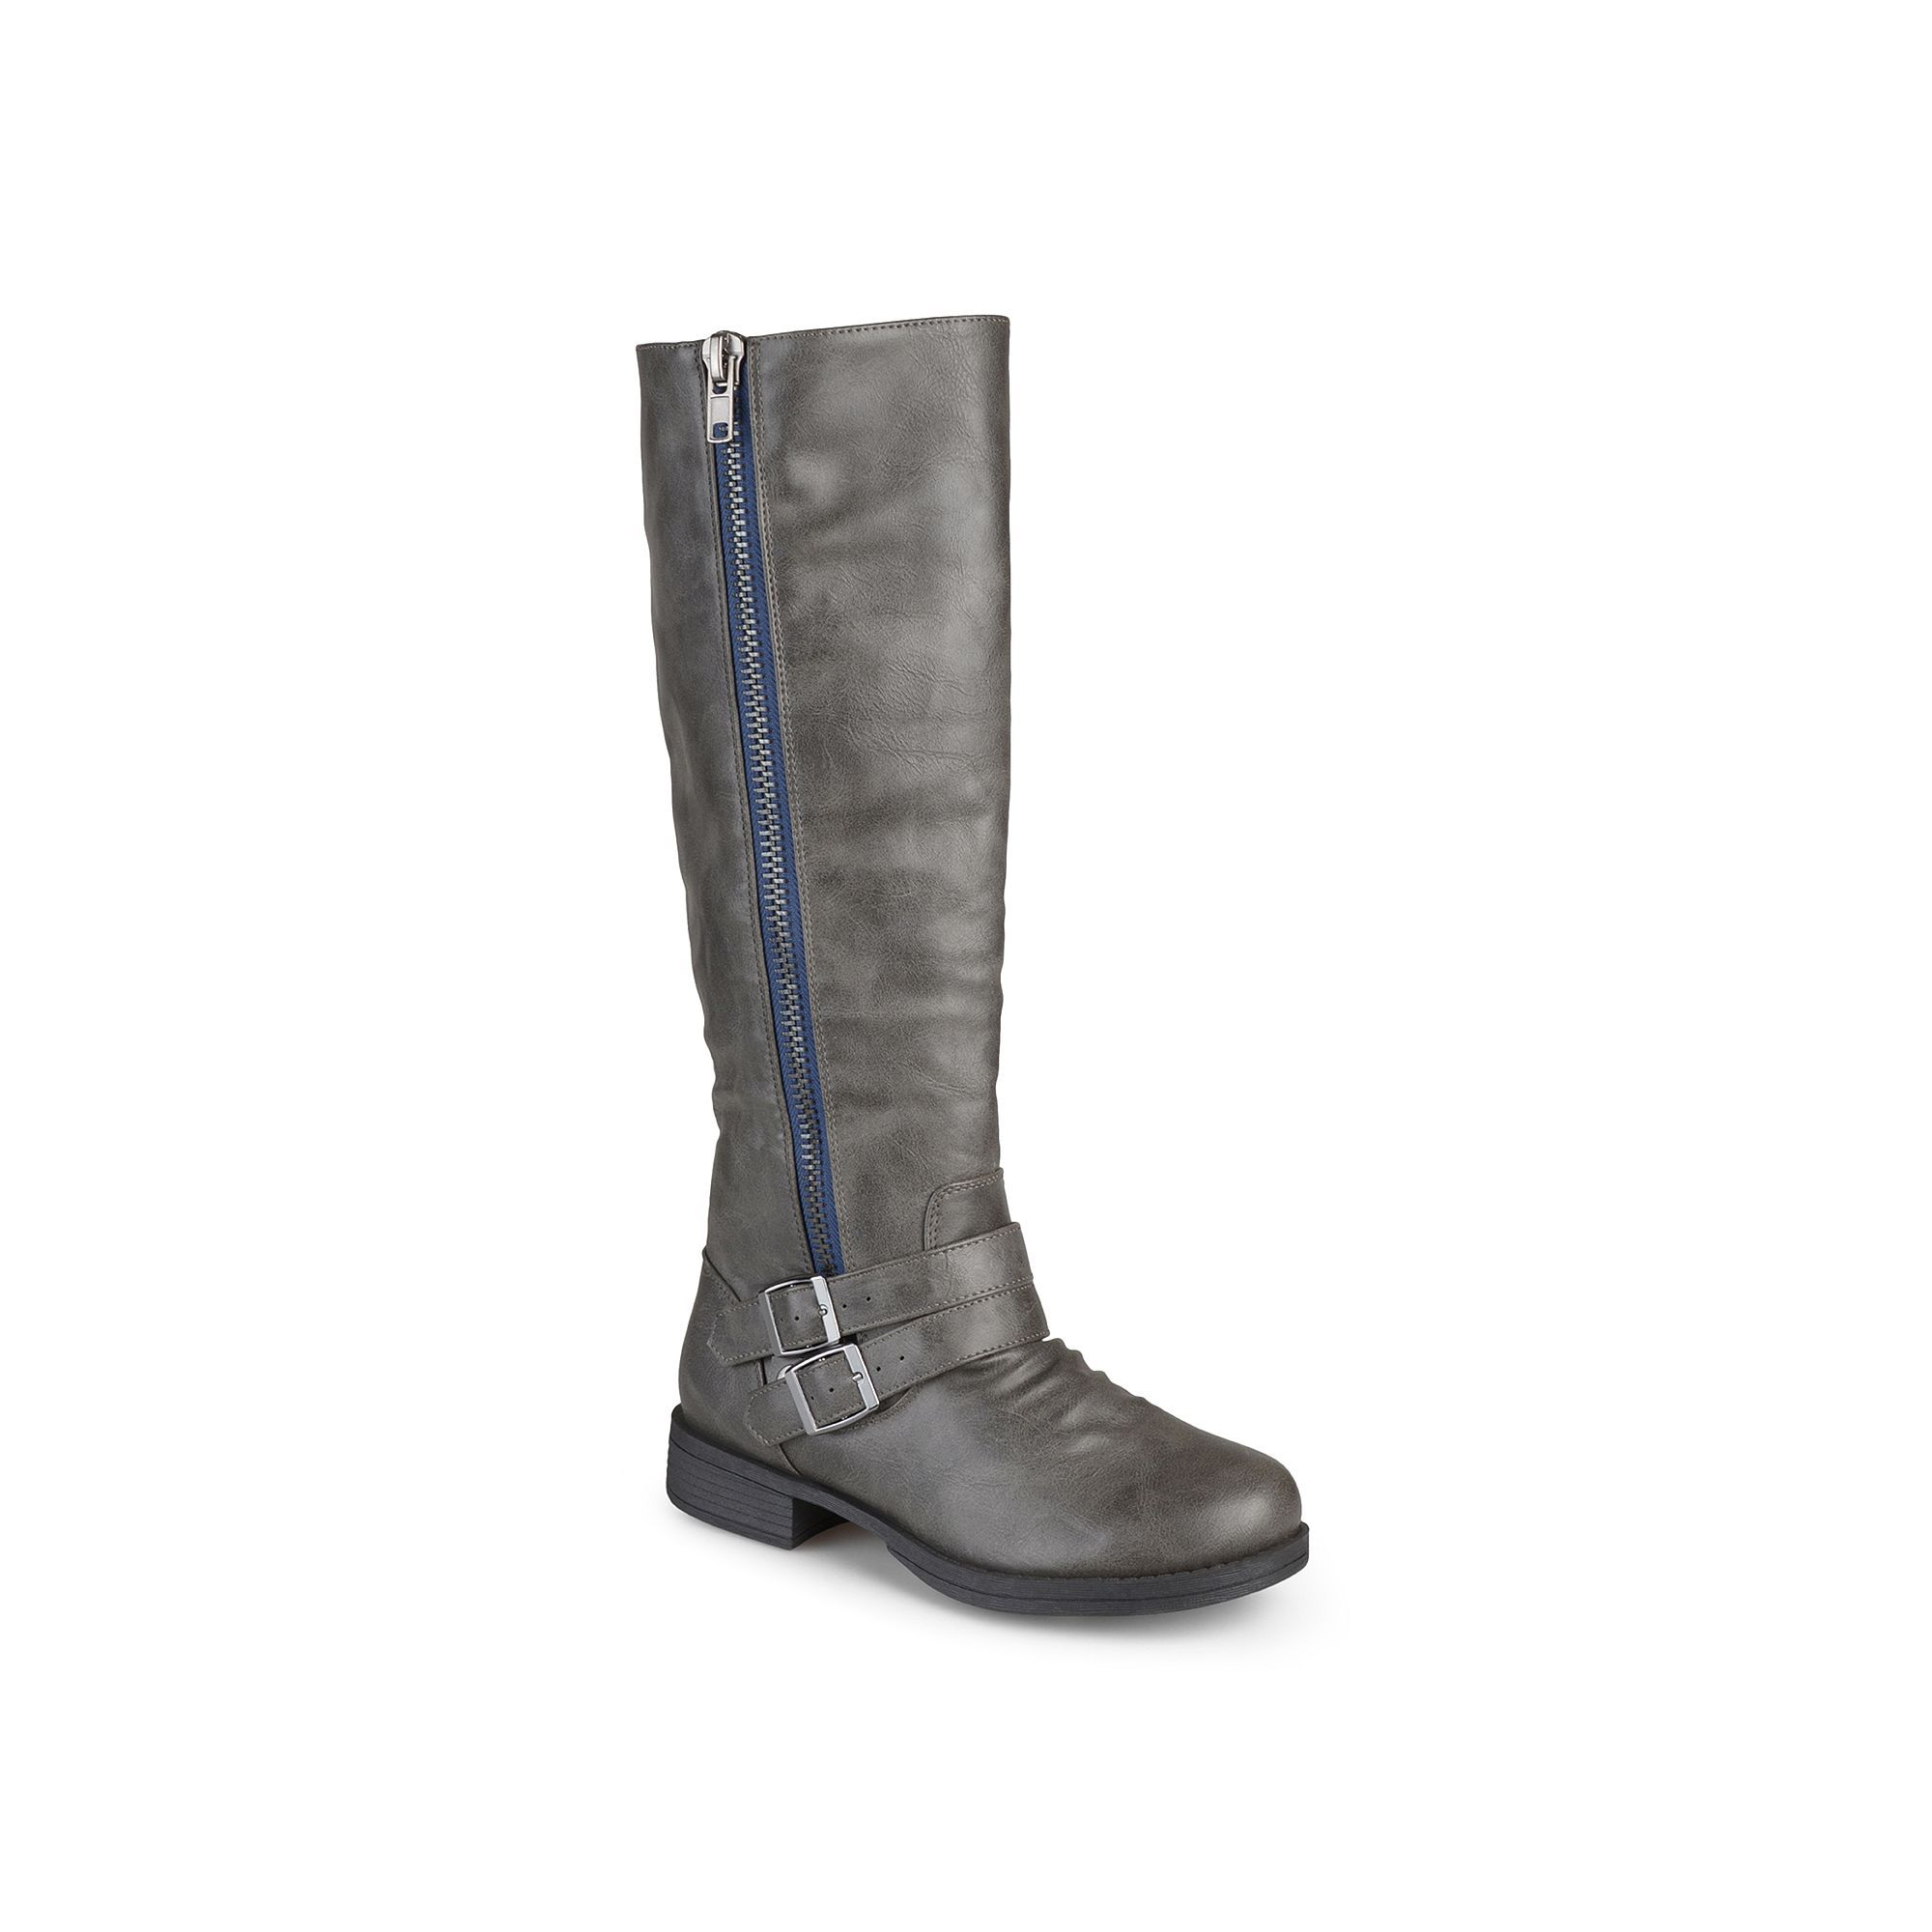 b5d9f0efa082 Journee Collection Lady Women s Knee-High Boots